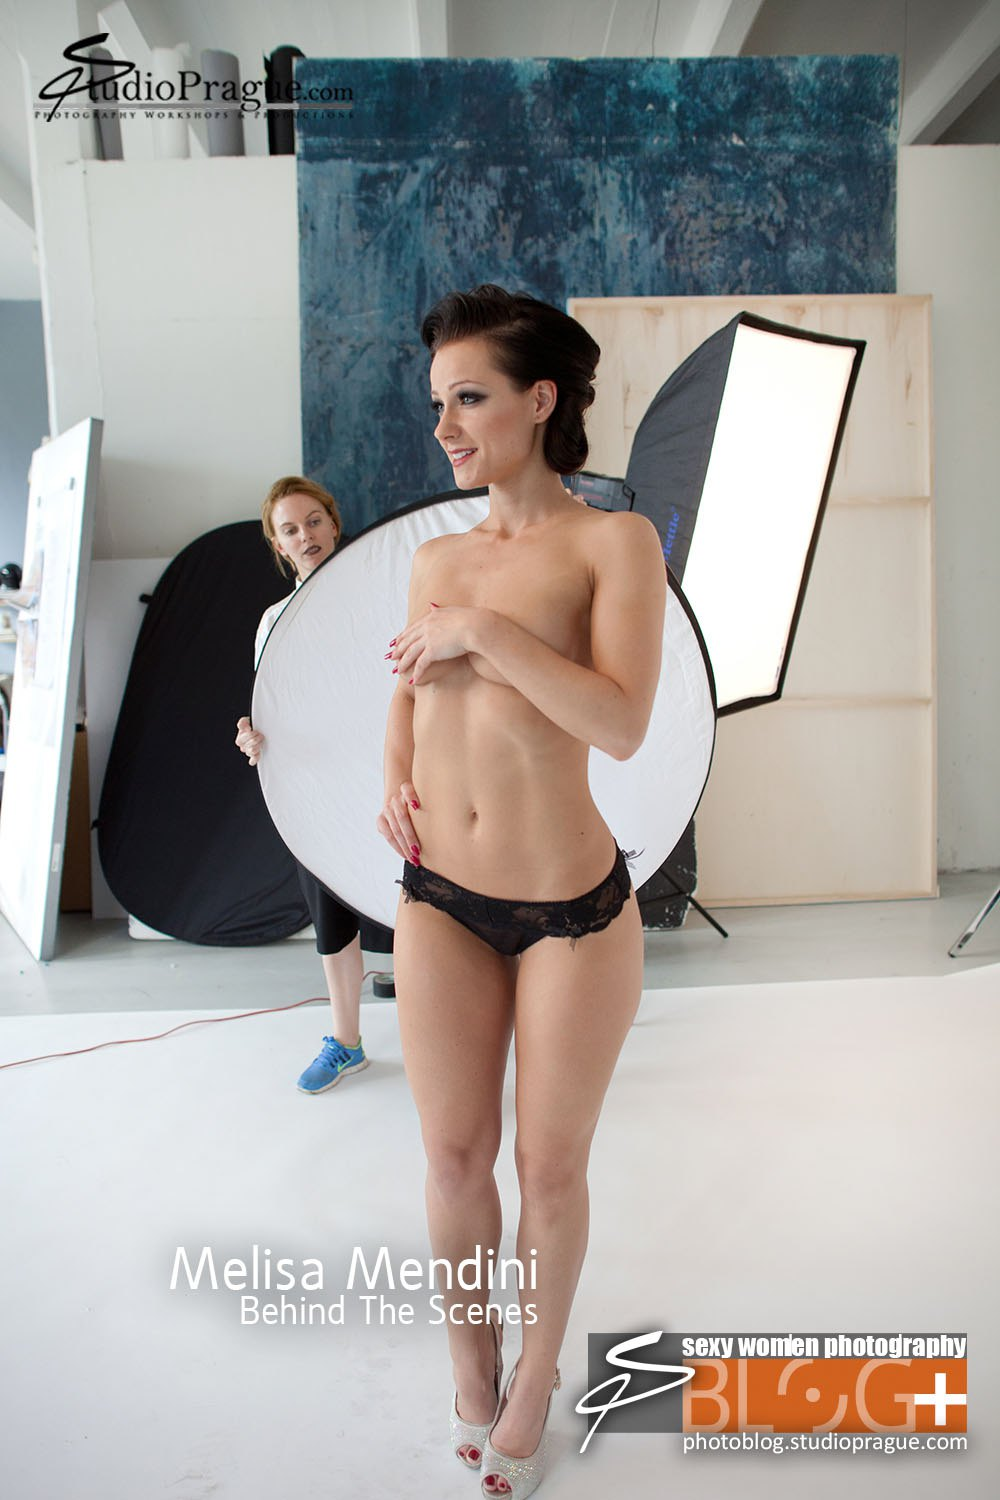 Melisa Mendini - Behind the Scenes in Photo Studio 1 - by Dan Hostettler